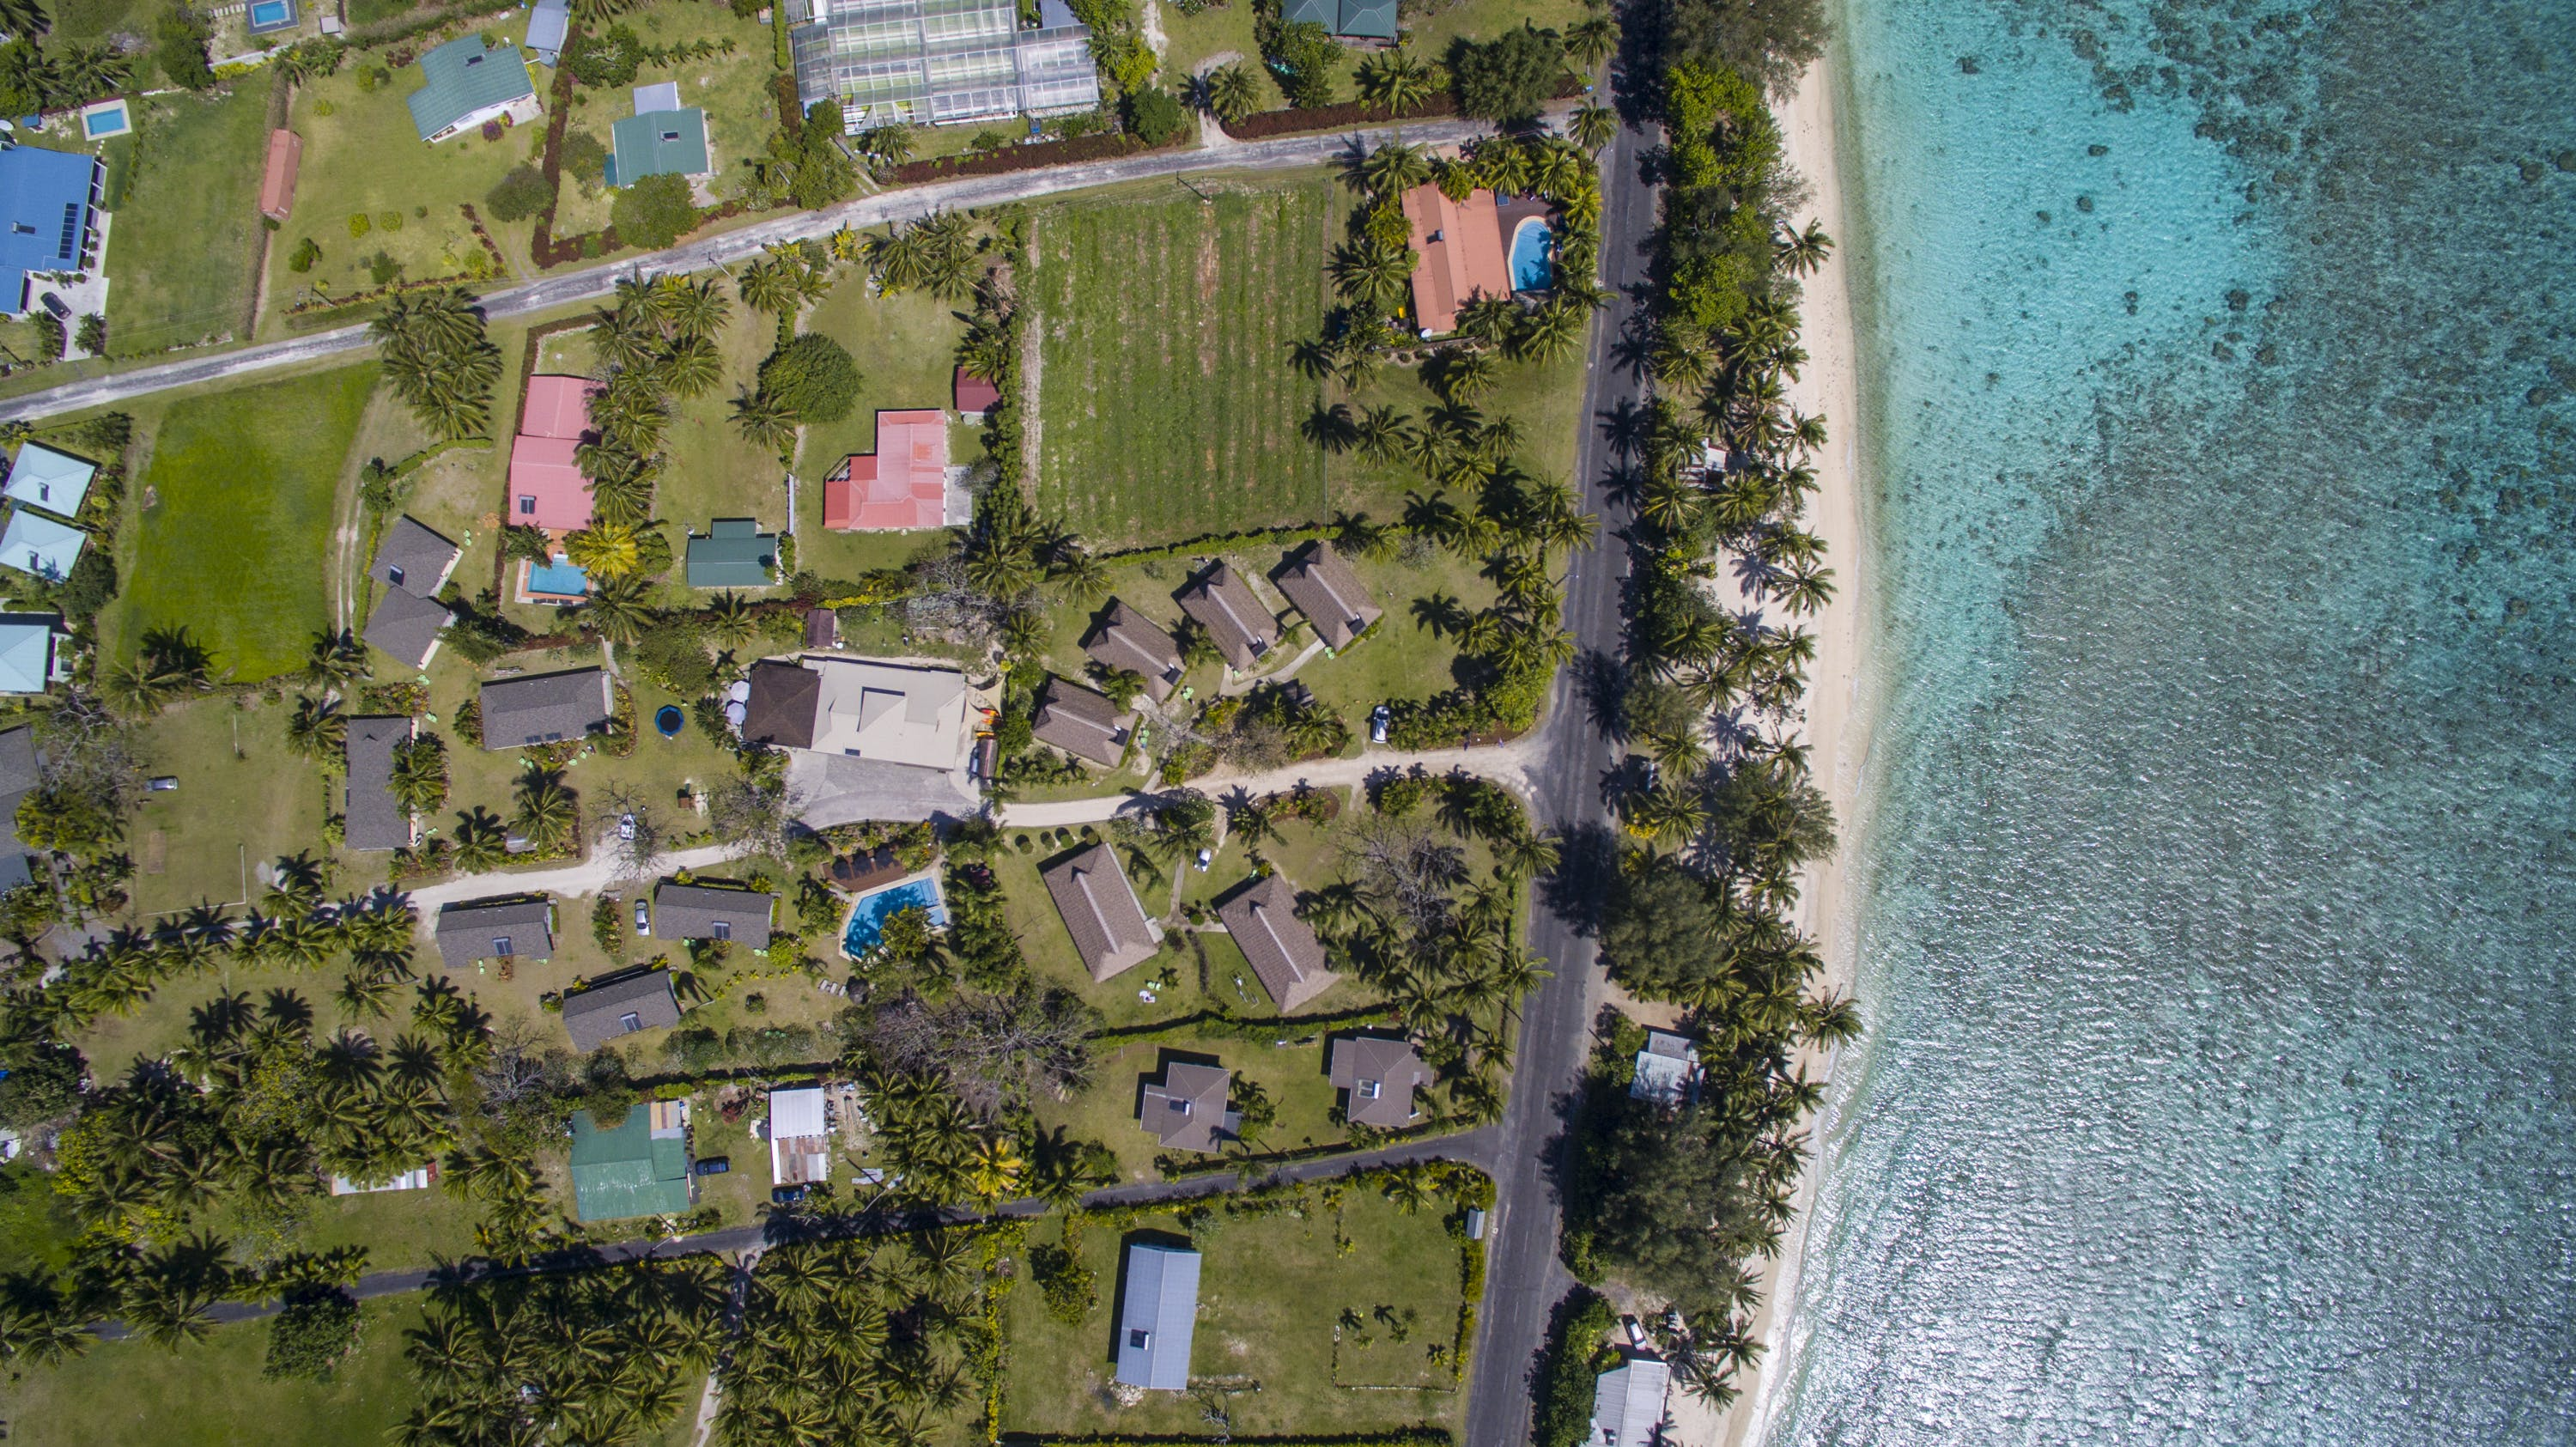 Aerial View of Lagoon Breeze Villas